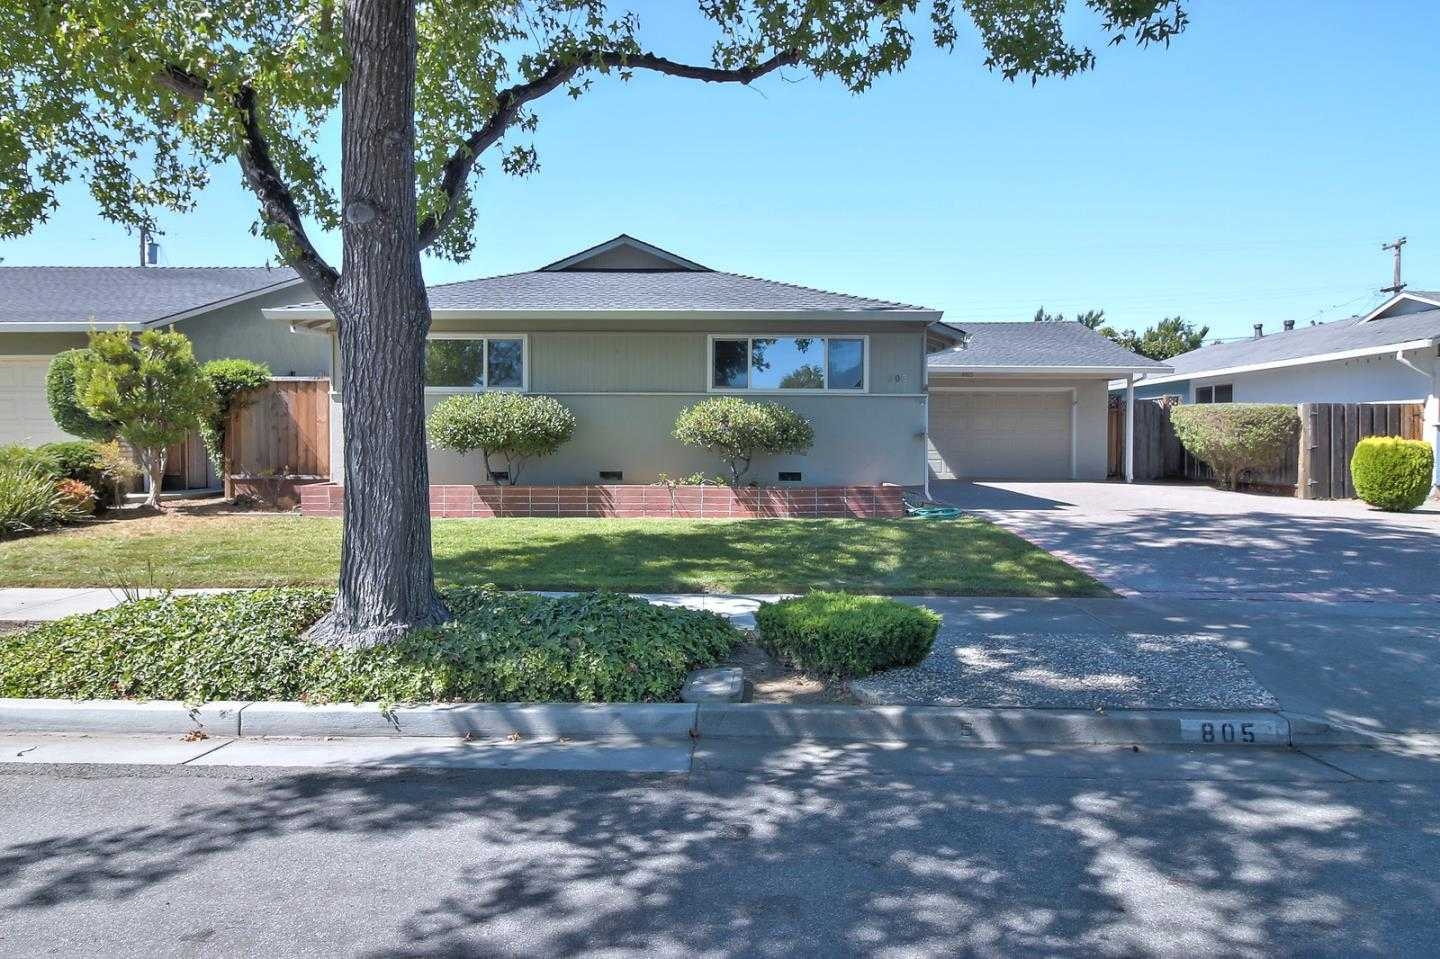 $1,598,000 - 3Br/2Ba -  for Sale in Sunnyvale